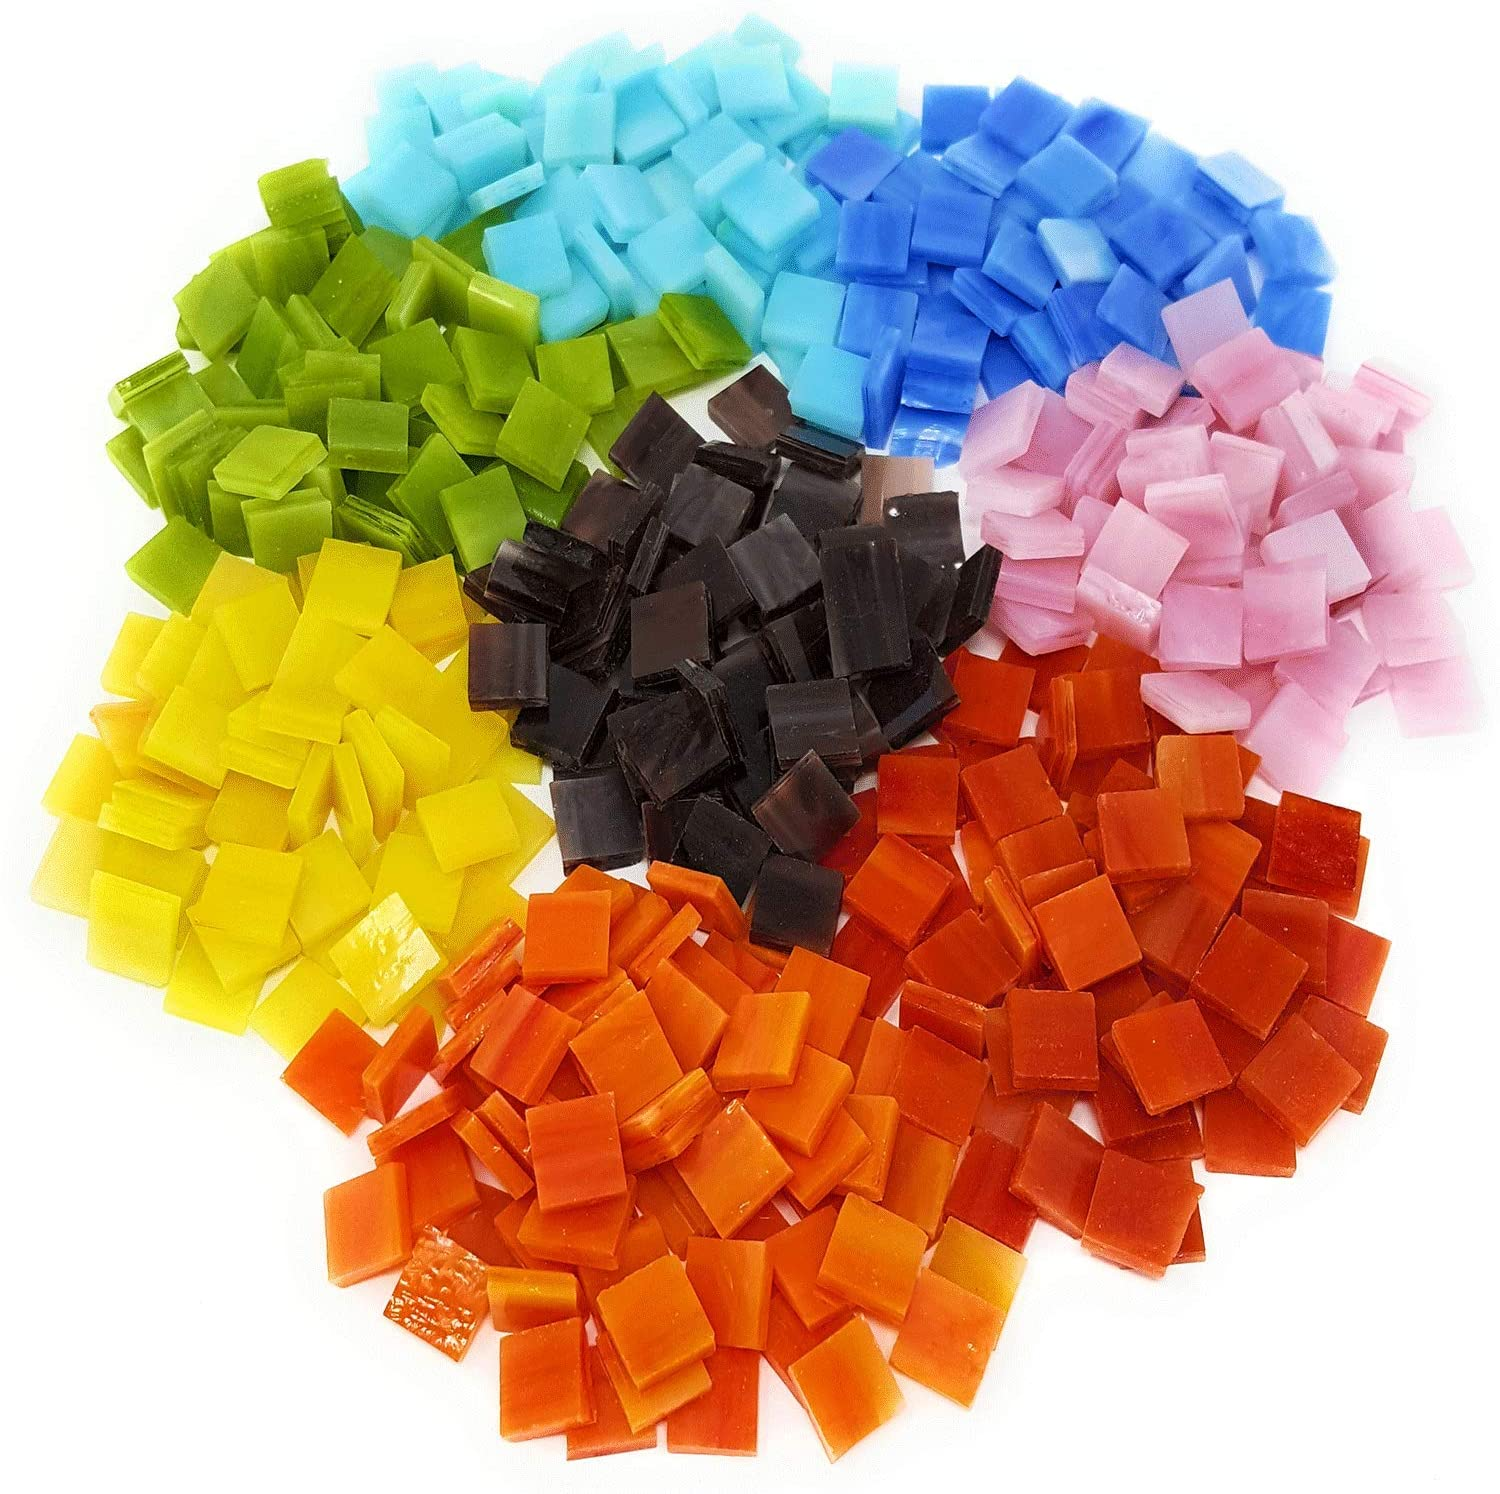 Colorful Mosaic Tiles Max 48% OFF – 480 Bargain sale Pieces Glas Stained Assorted Pack of